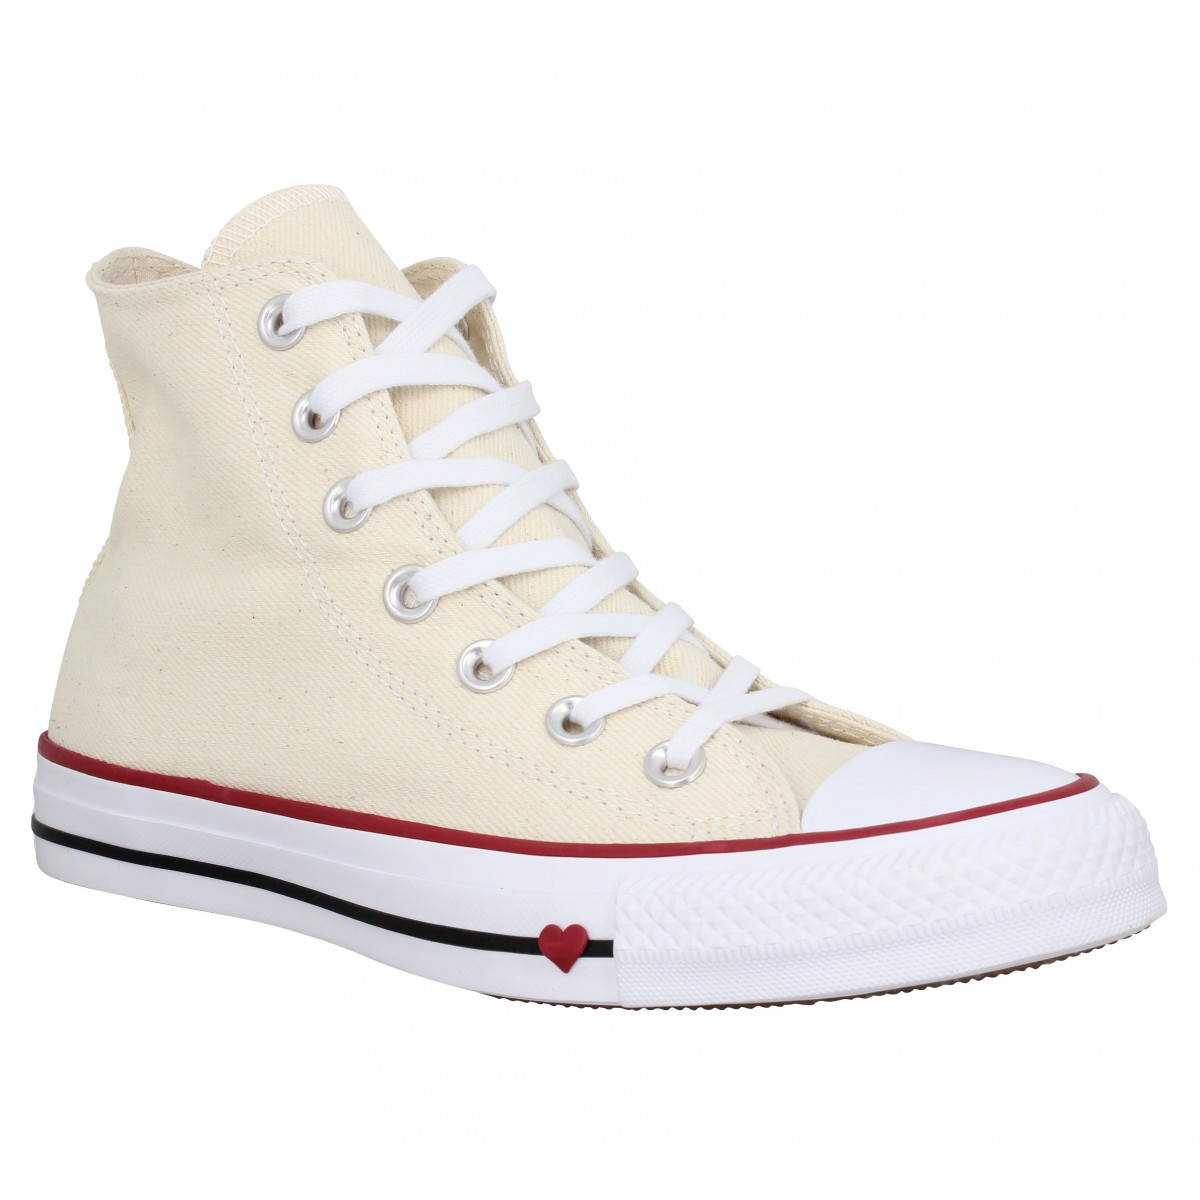 242bbfef920d1 Baskets CONVERSE Chuck Taylor All Star Hi toile Femme Natural